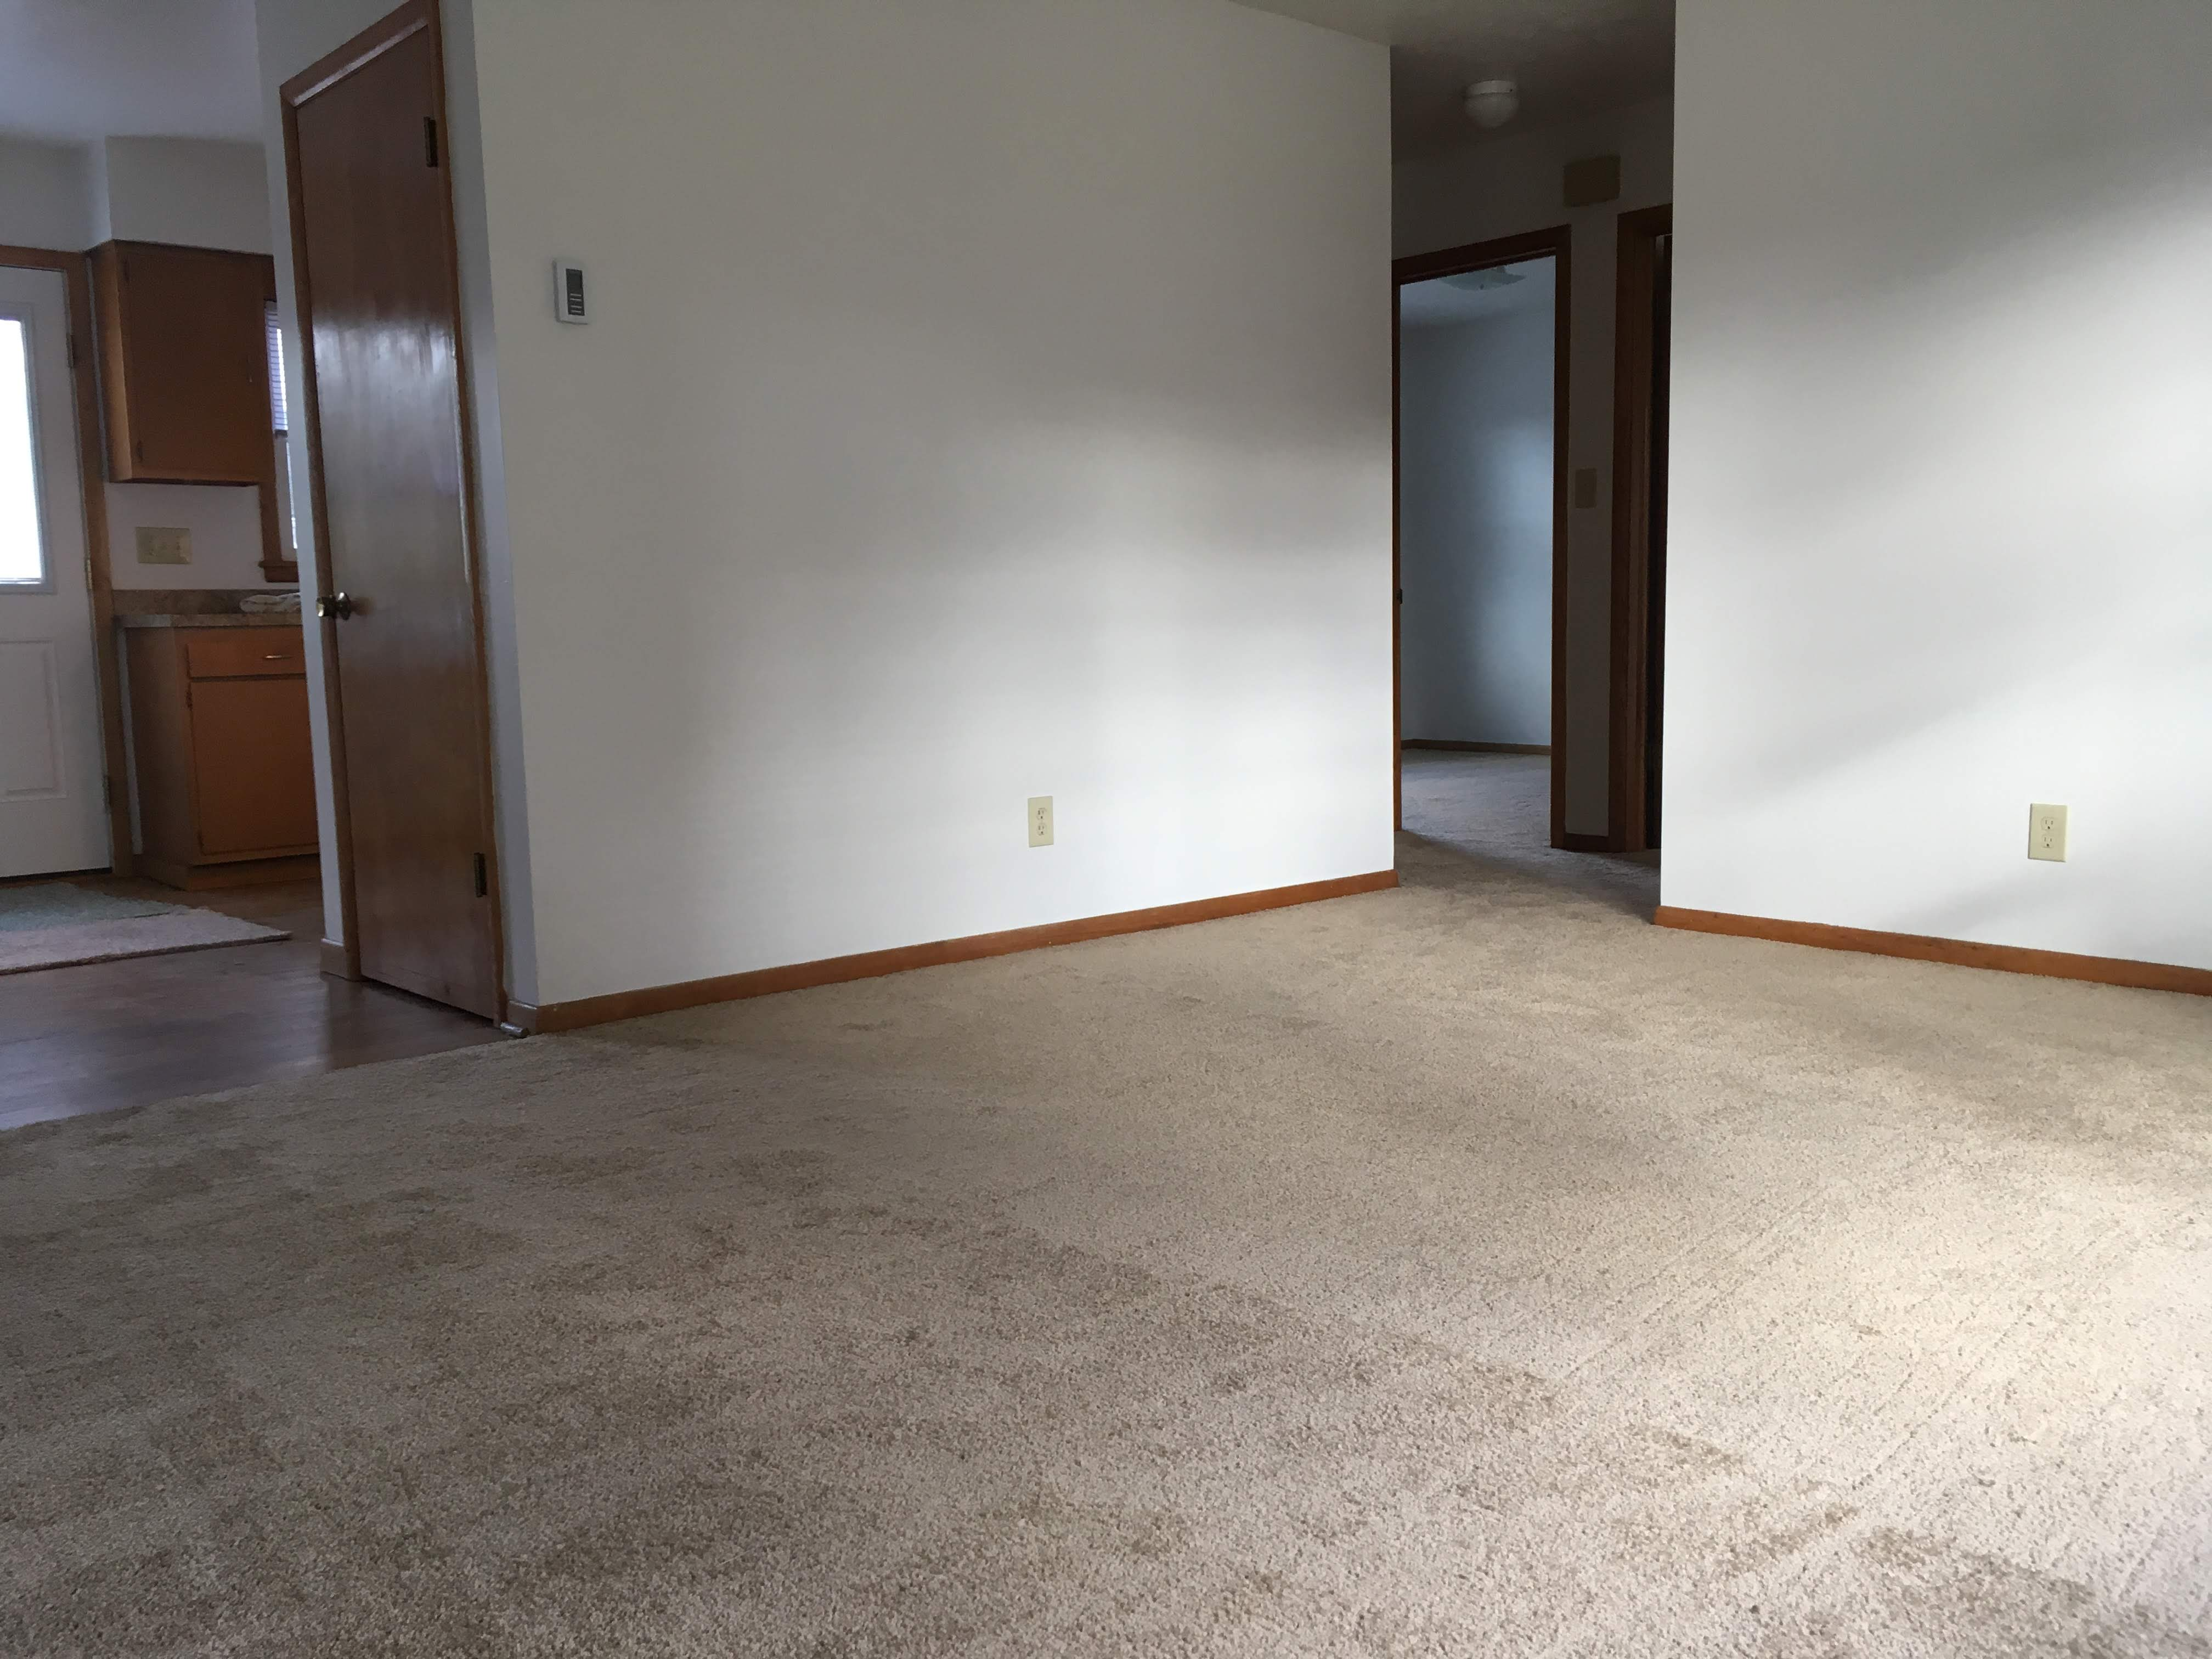 2 bedroom twinplex with basement Apartment for rent Barberton Ohio